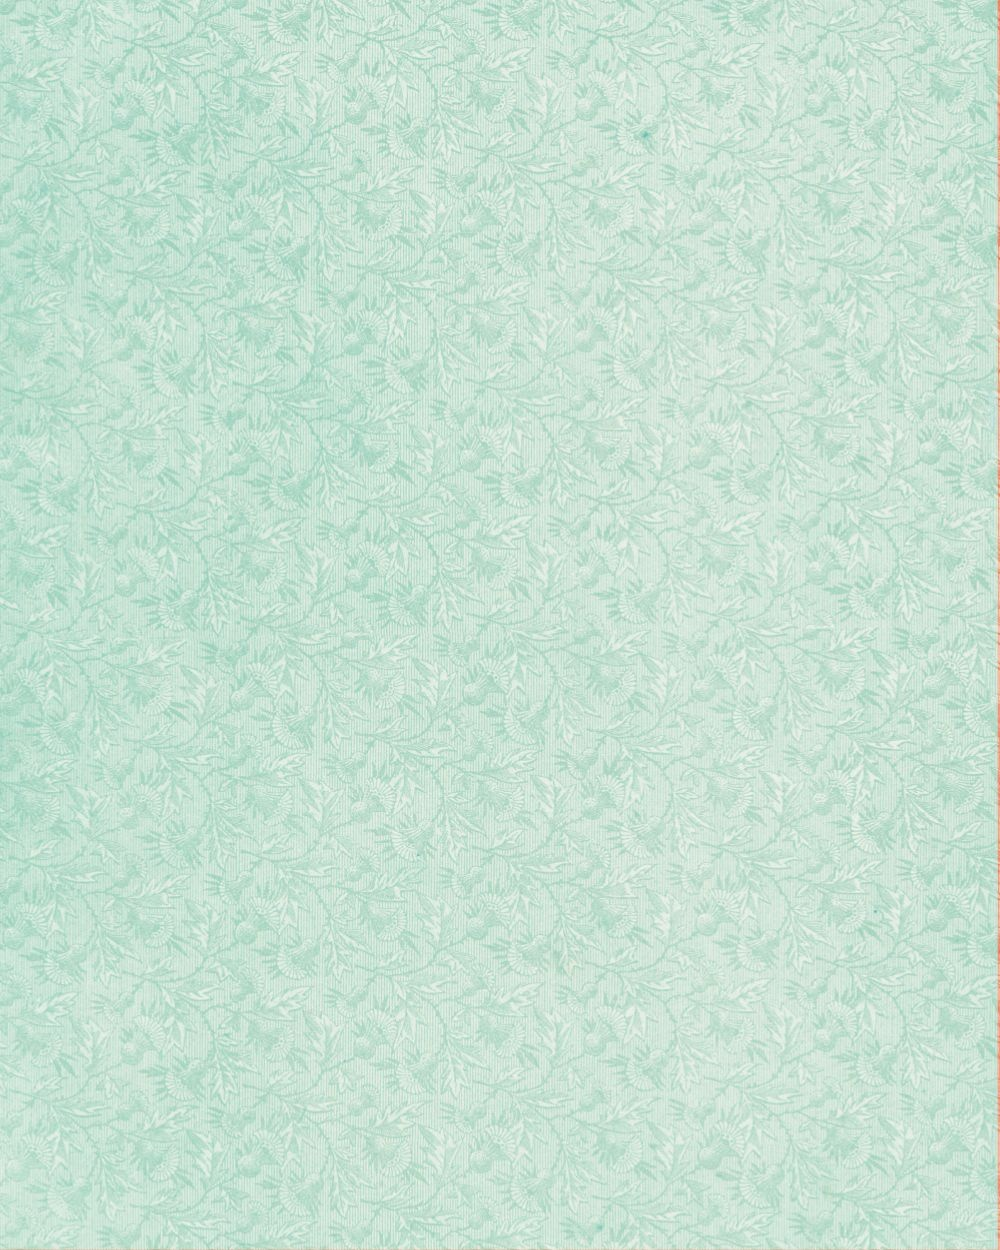 Free Floral Paper Backgrounds | Backgrounds! | Embossed Wallpaper - Free Printable Card Stock Paper